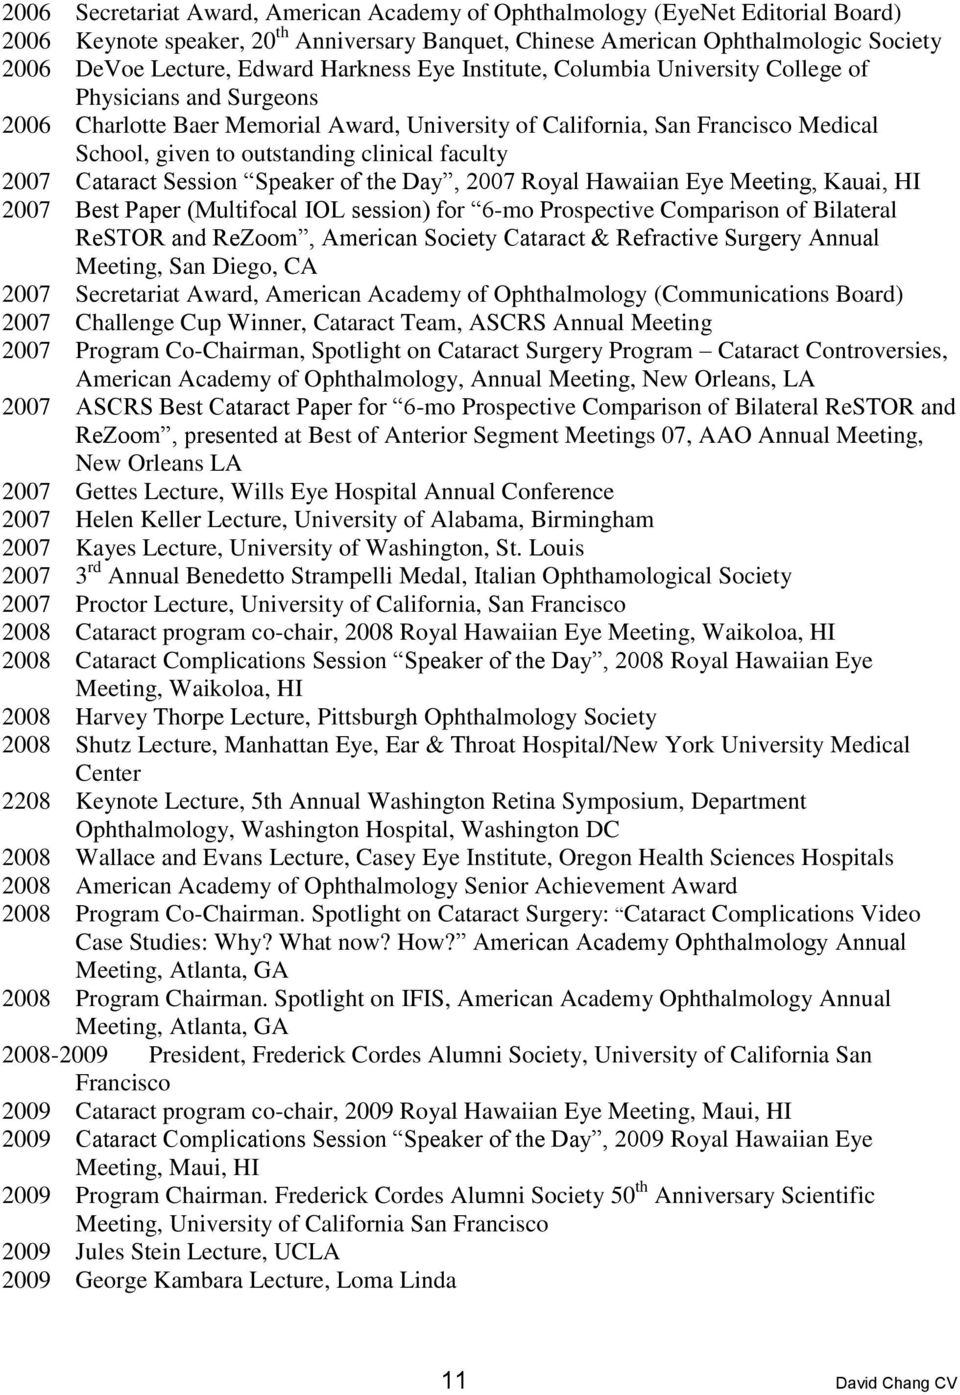 clinical faculty 2007 Cataract Session Speaker of the Day, 2007 Royal Hawaiian Eye Meeting, Kauai, HI 2007 Best Paper (Multifocal IOL session) for 6-mo Prospective Comparison of Bilateral ReSTOR and